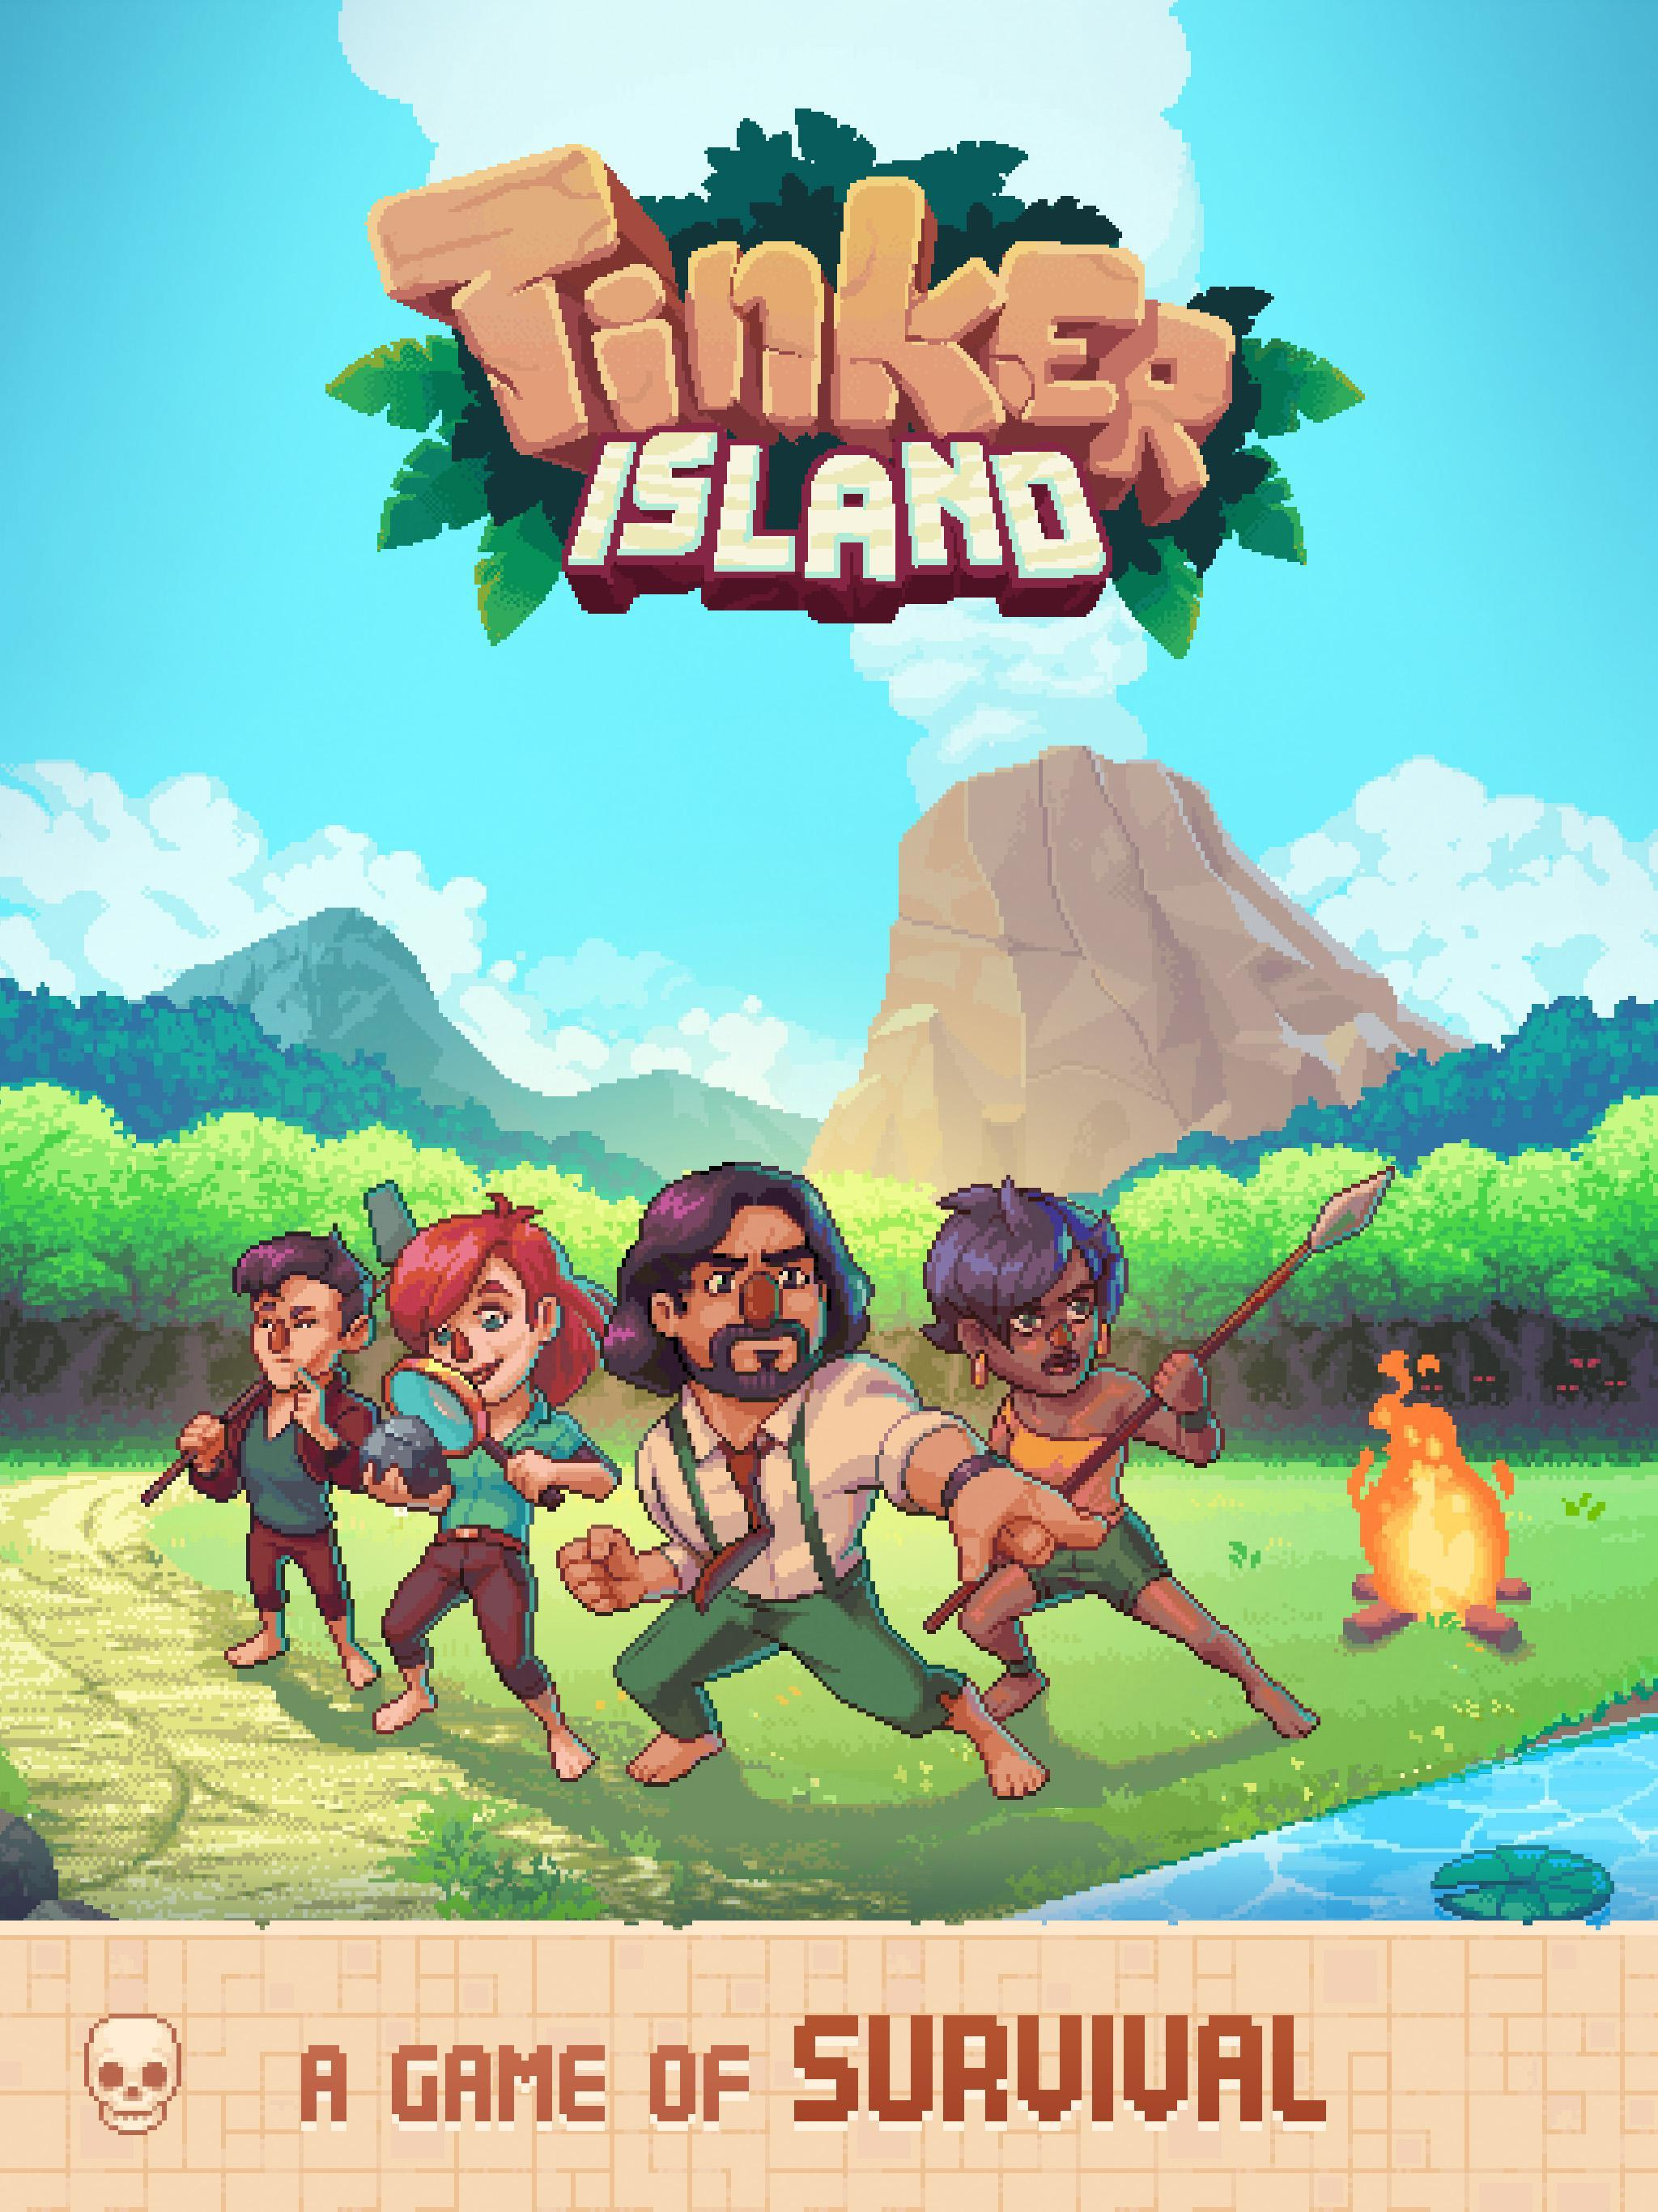 Tinker Island Survival Story Adventure 1.5.09 Screenshot 13